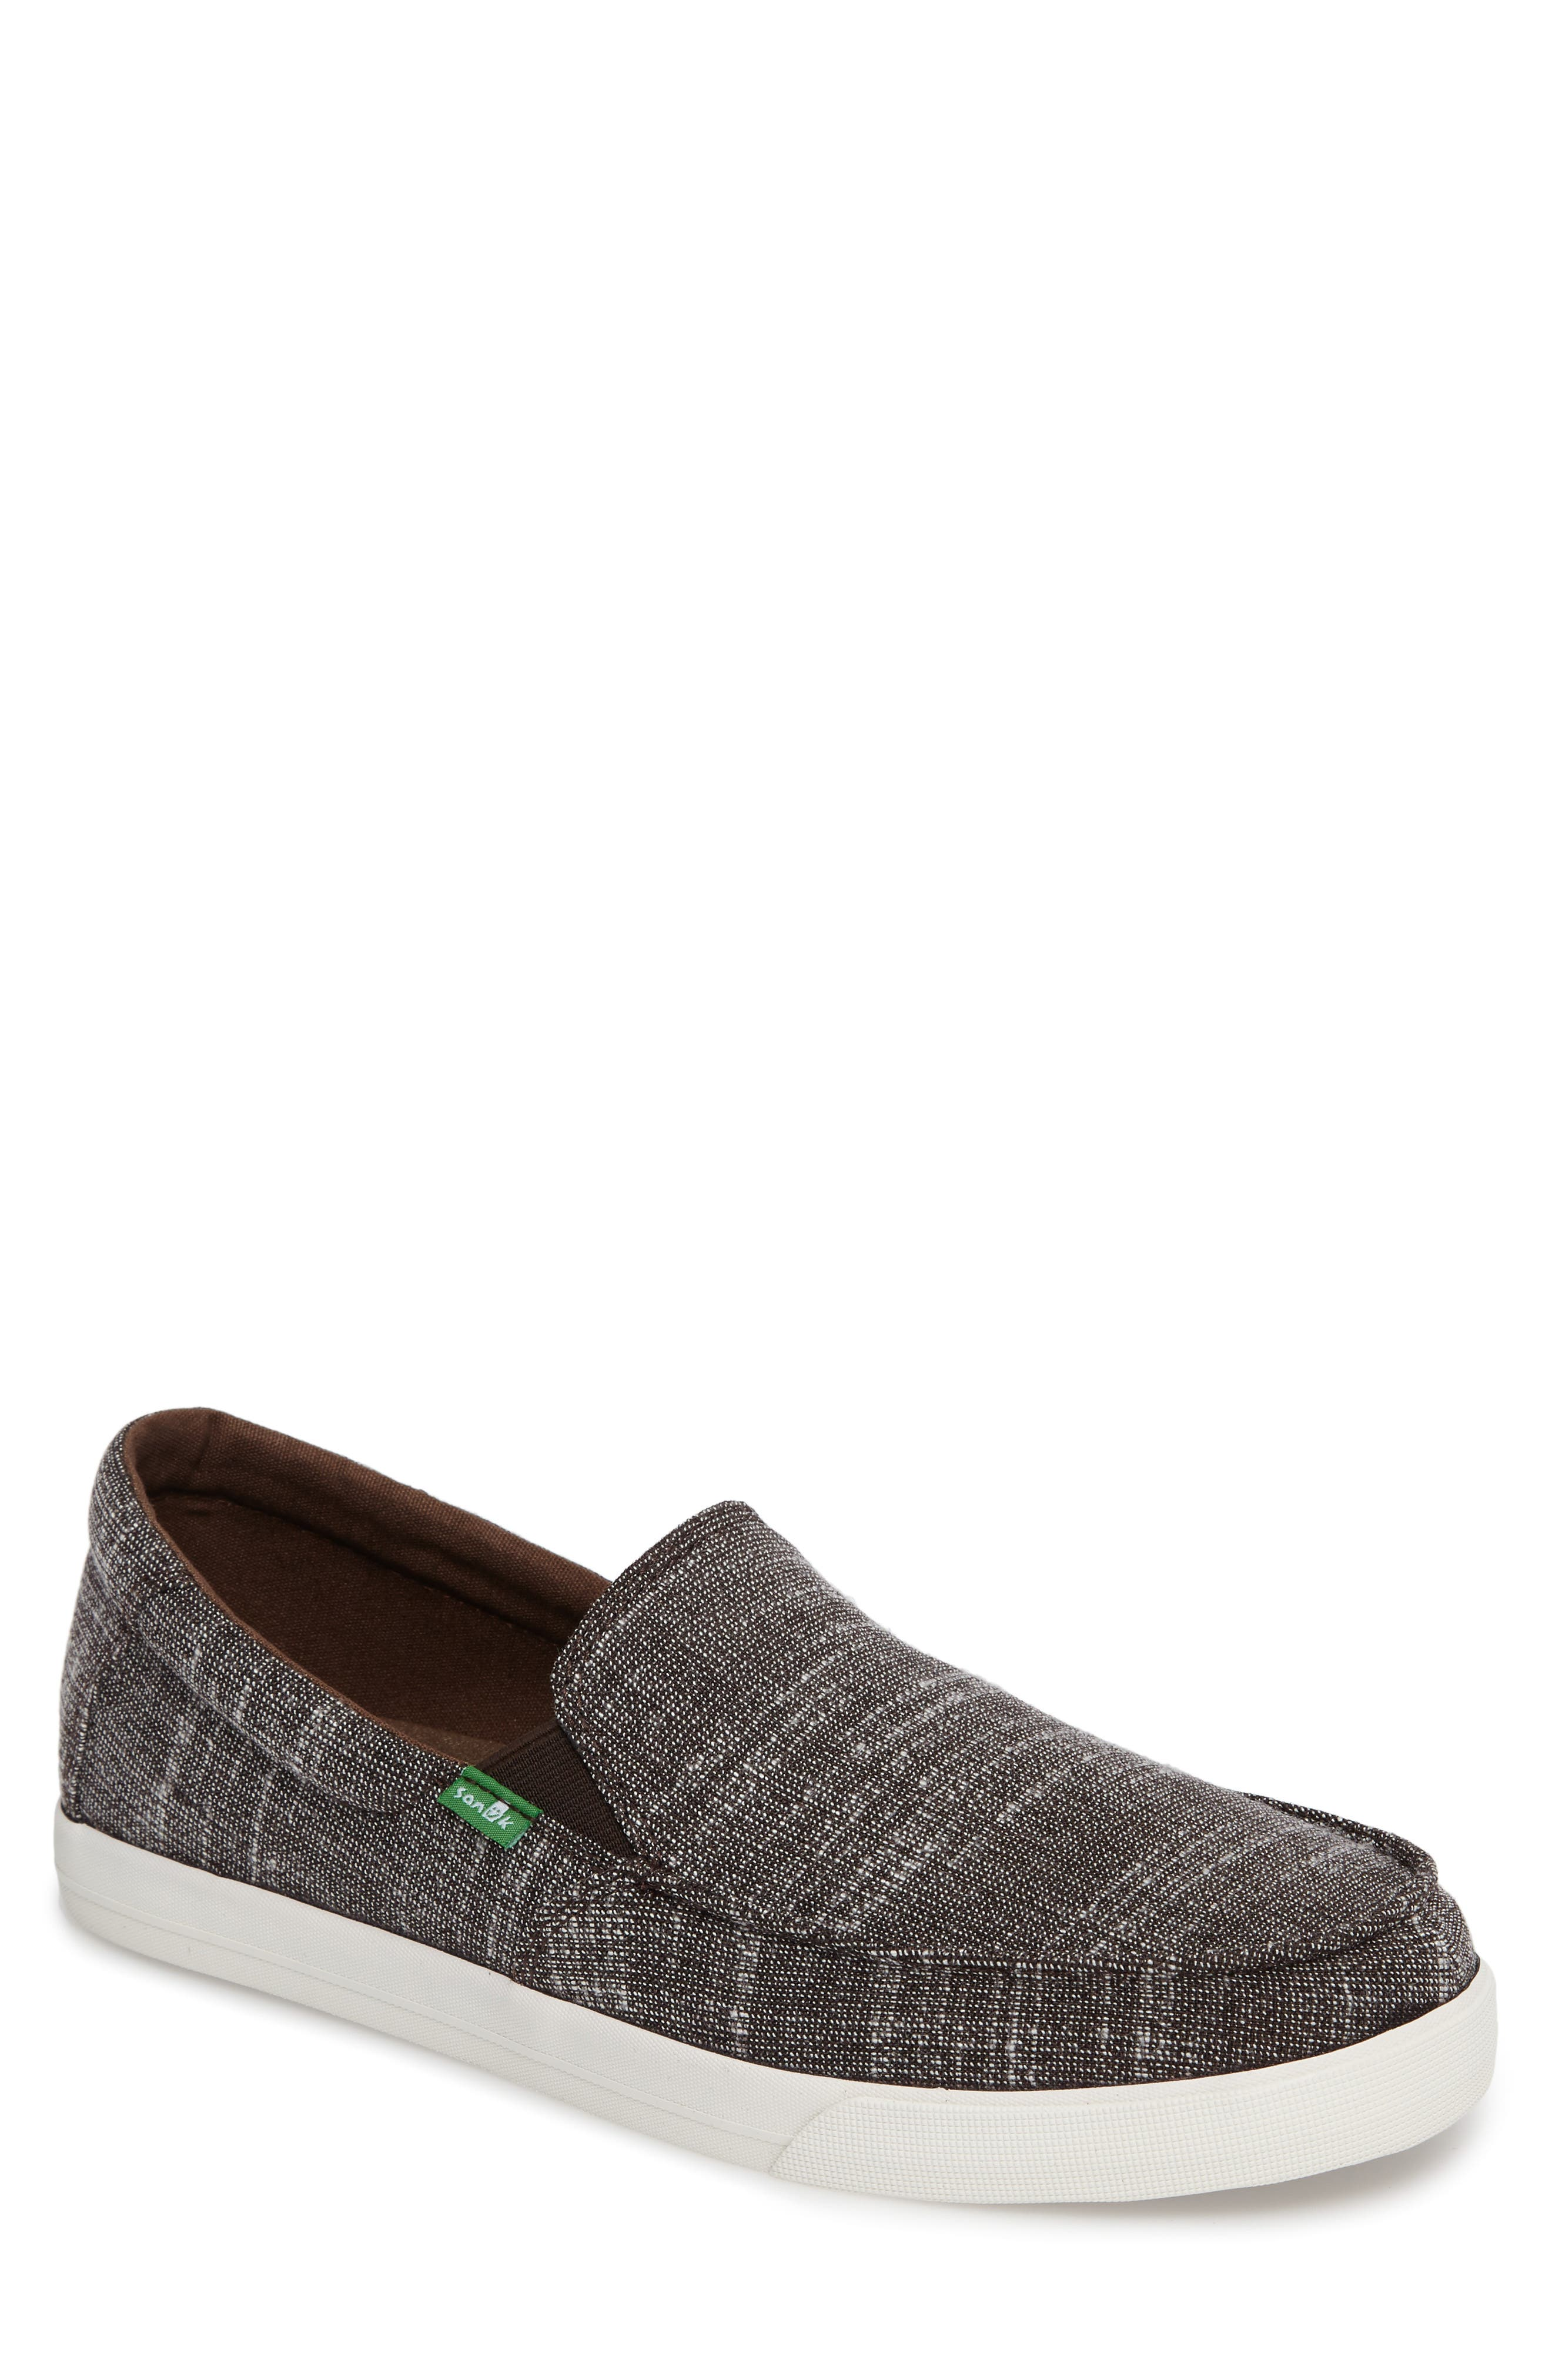 'Sideline' Linen Slip-On,                         Main,                         color, Brown